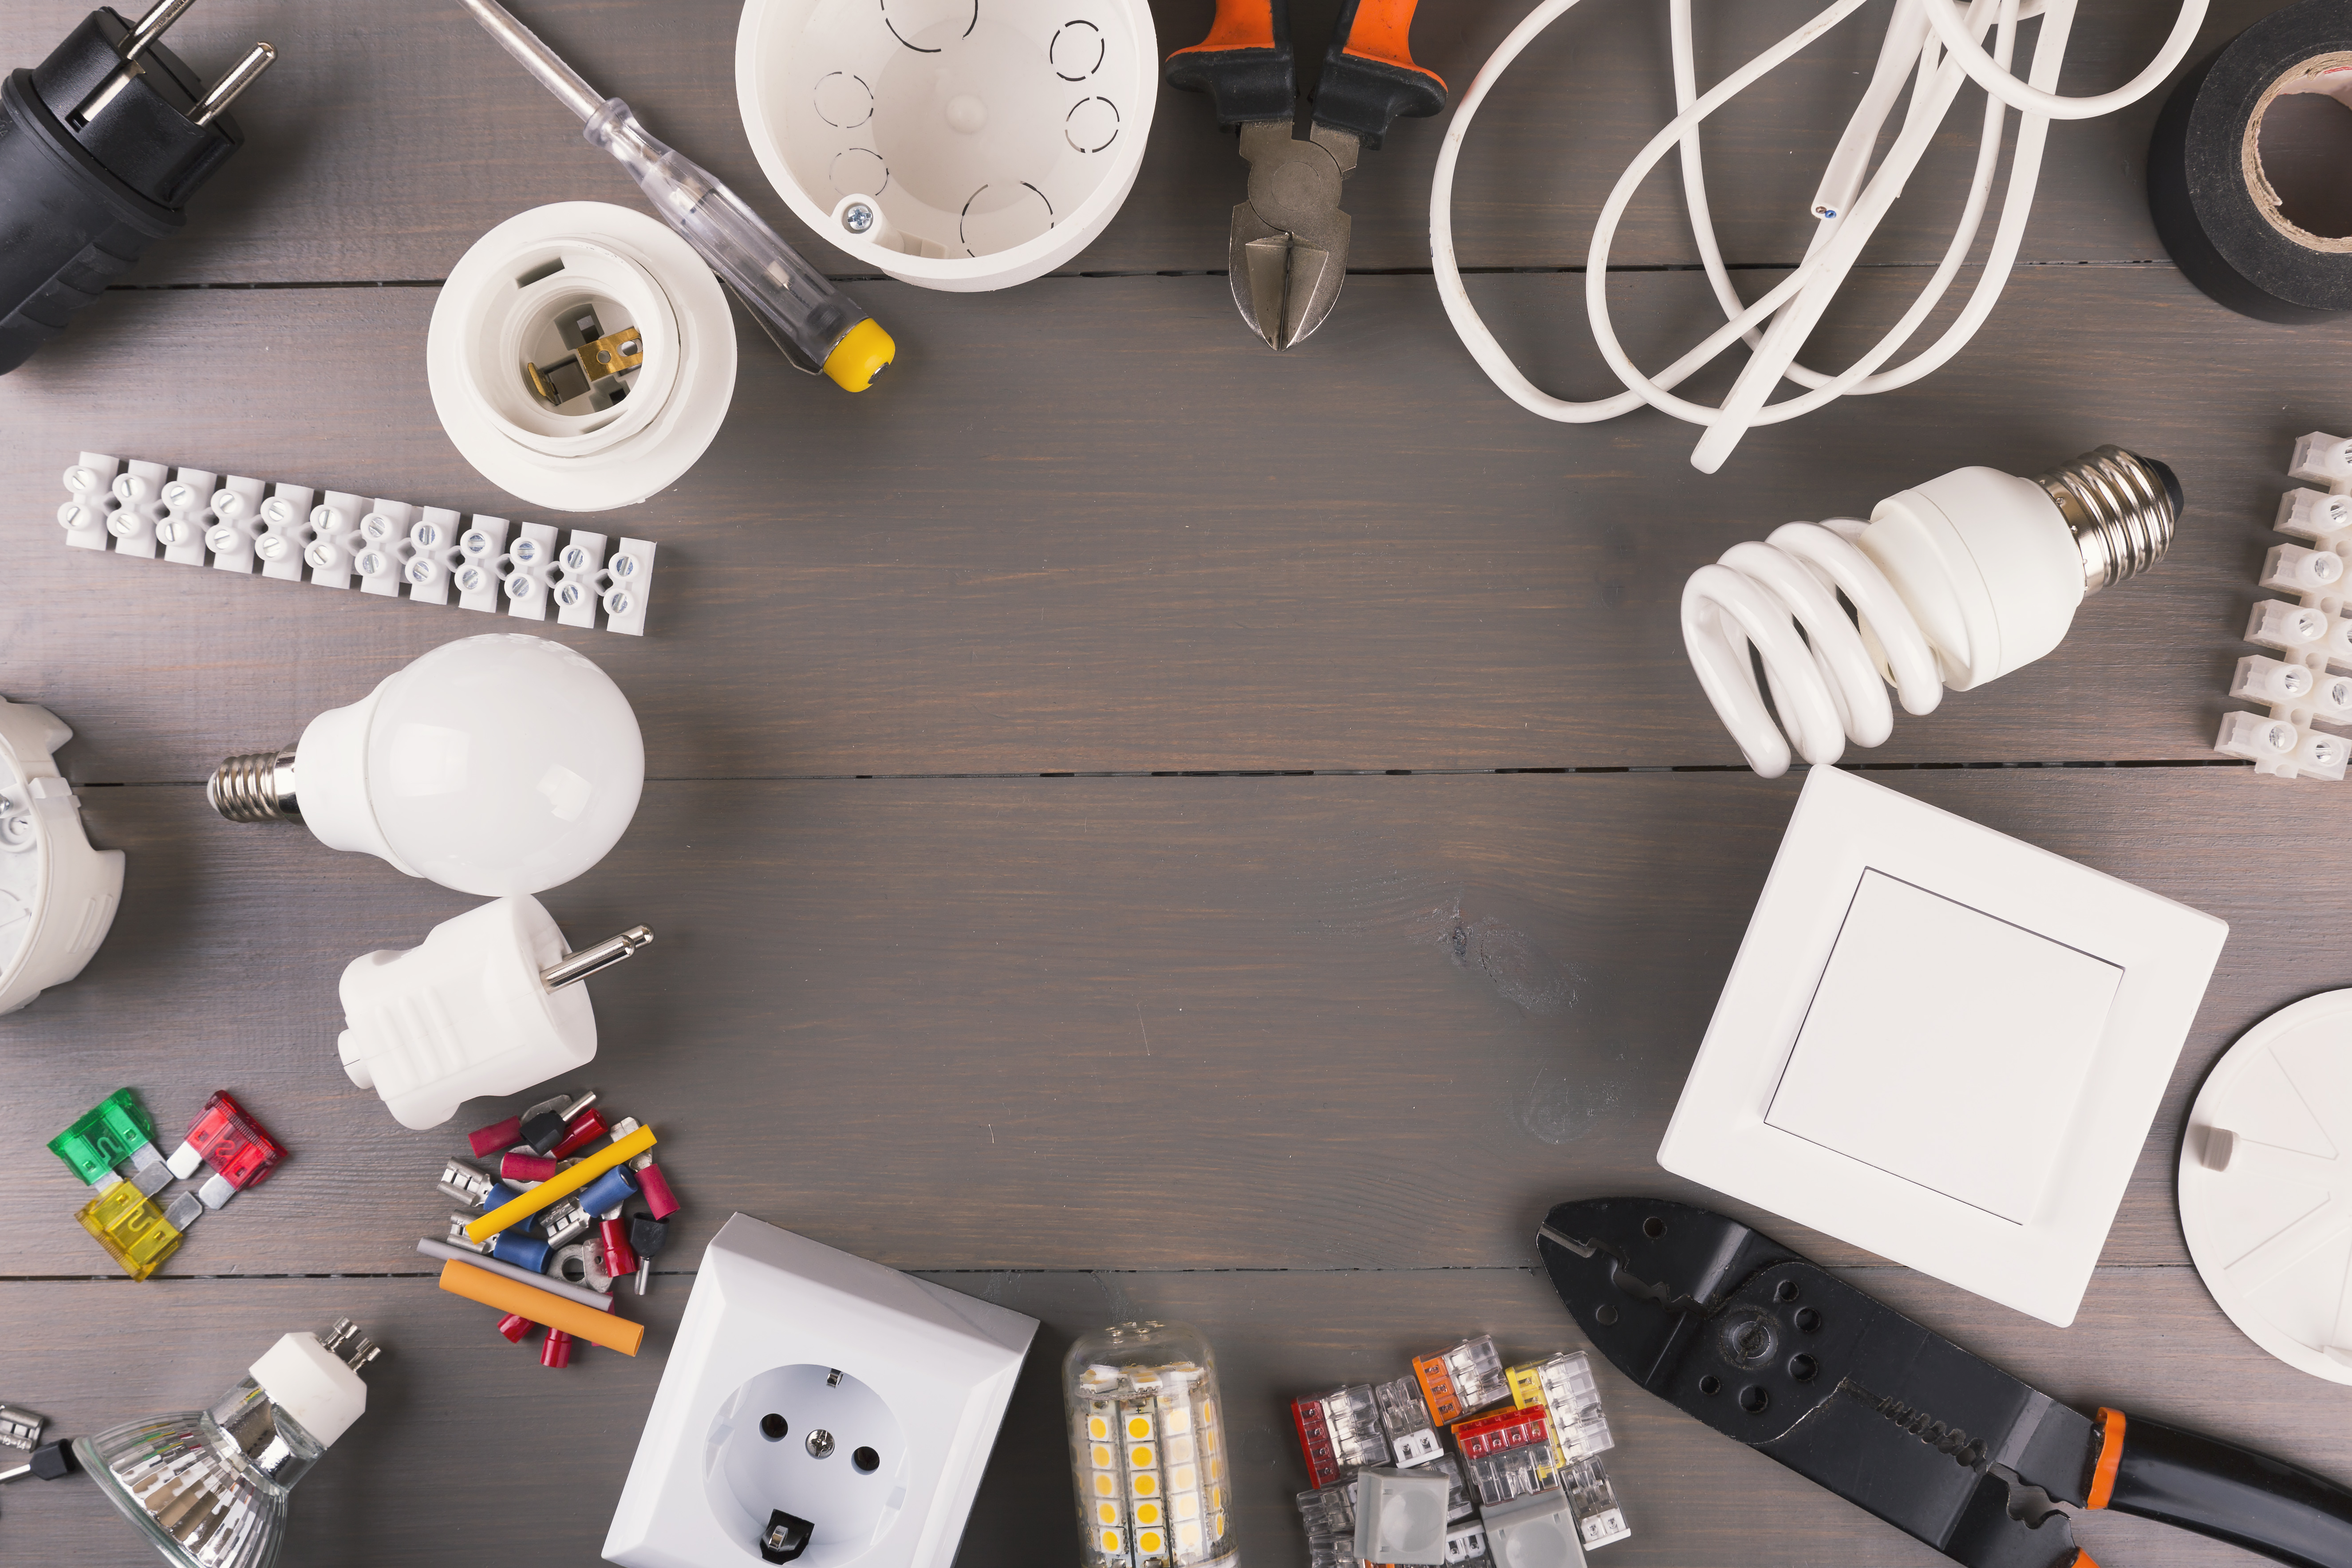 top view of electrical tools and equipment on gray wooden table